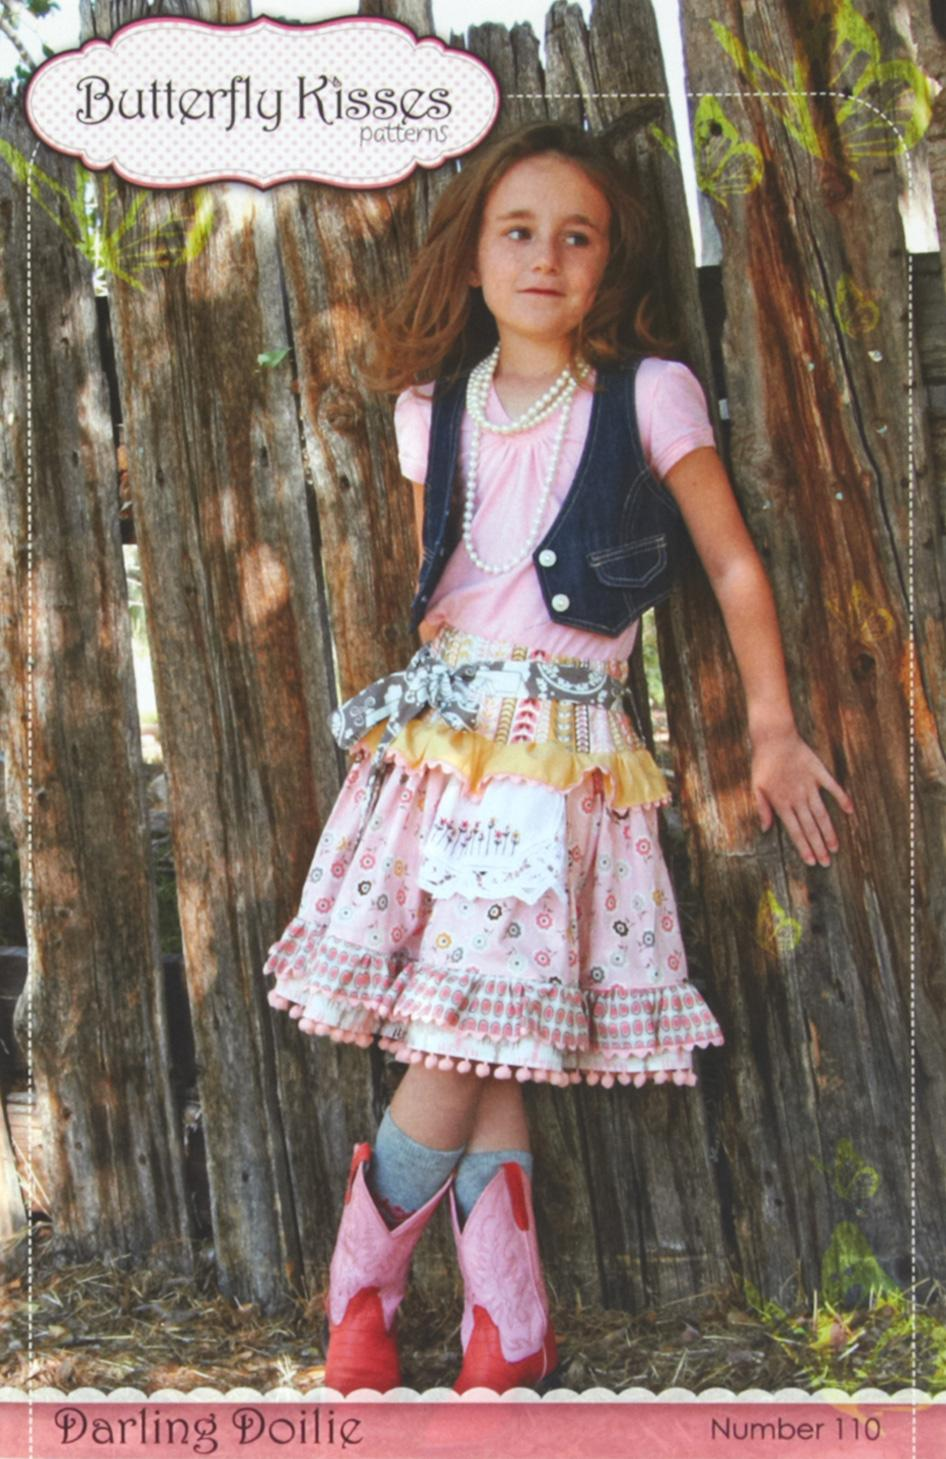 Butterfly Kisses Darling Doilie Girls Skirt Pattern